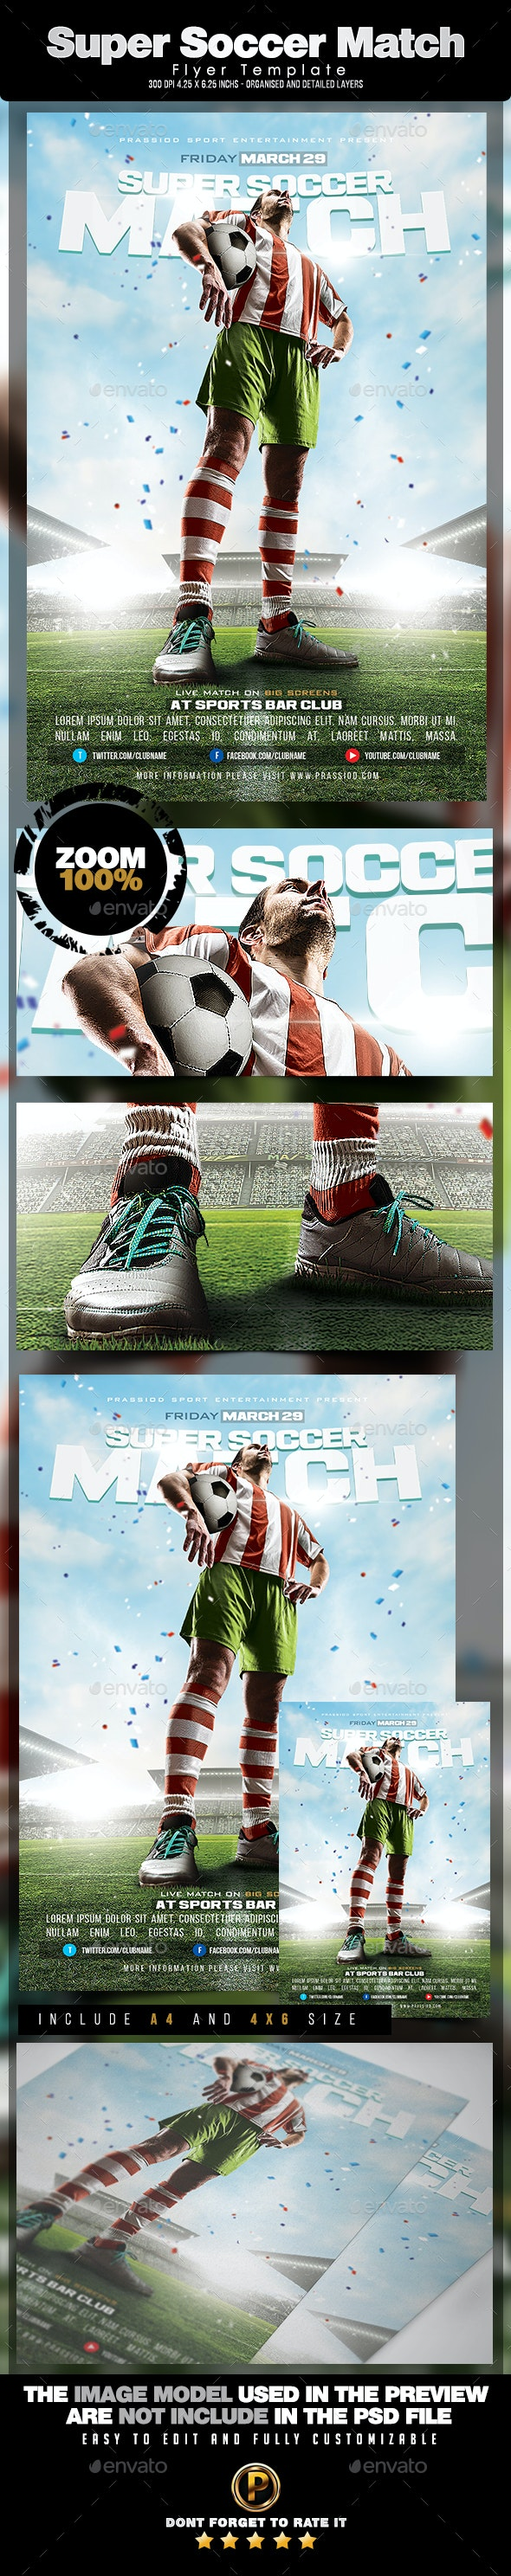 Super Soccer Match Flyer Template - Sports Events